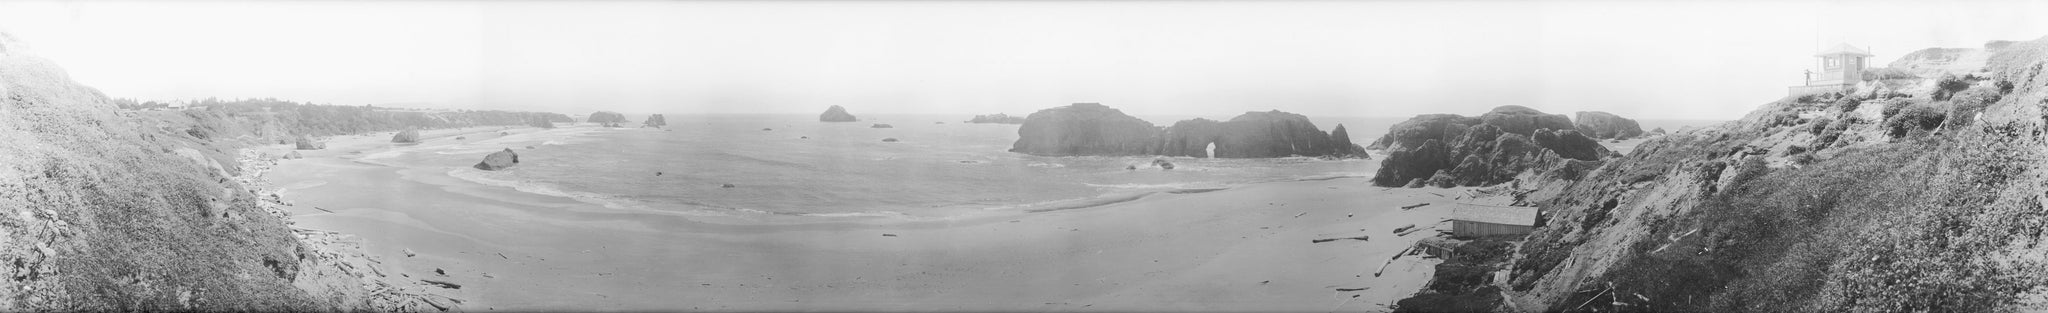 Lookout Point at Bandon's Coquille Point, including the U.S. Life Saving Service lookout and boathouse, circa 1914. -- Courtesy Bandon Historical Society Museum